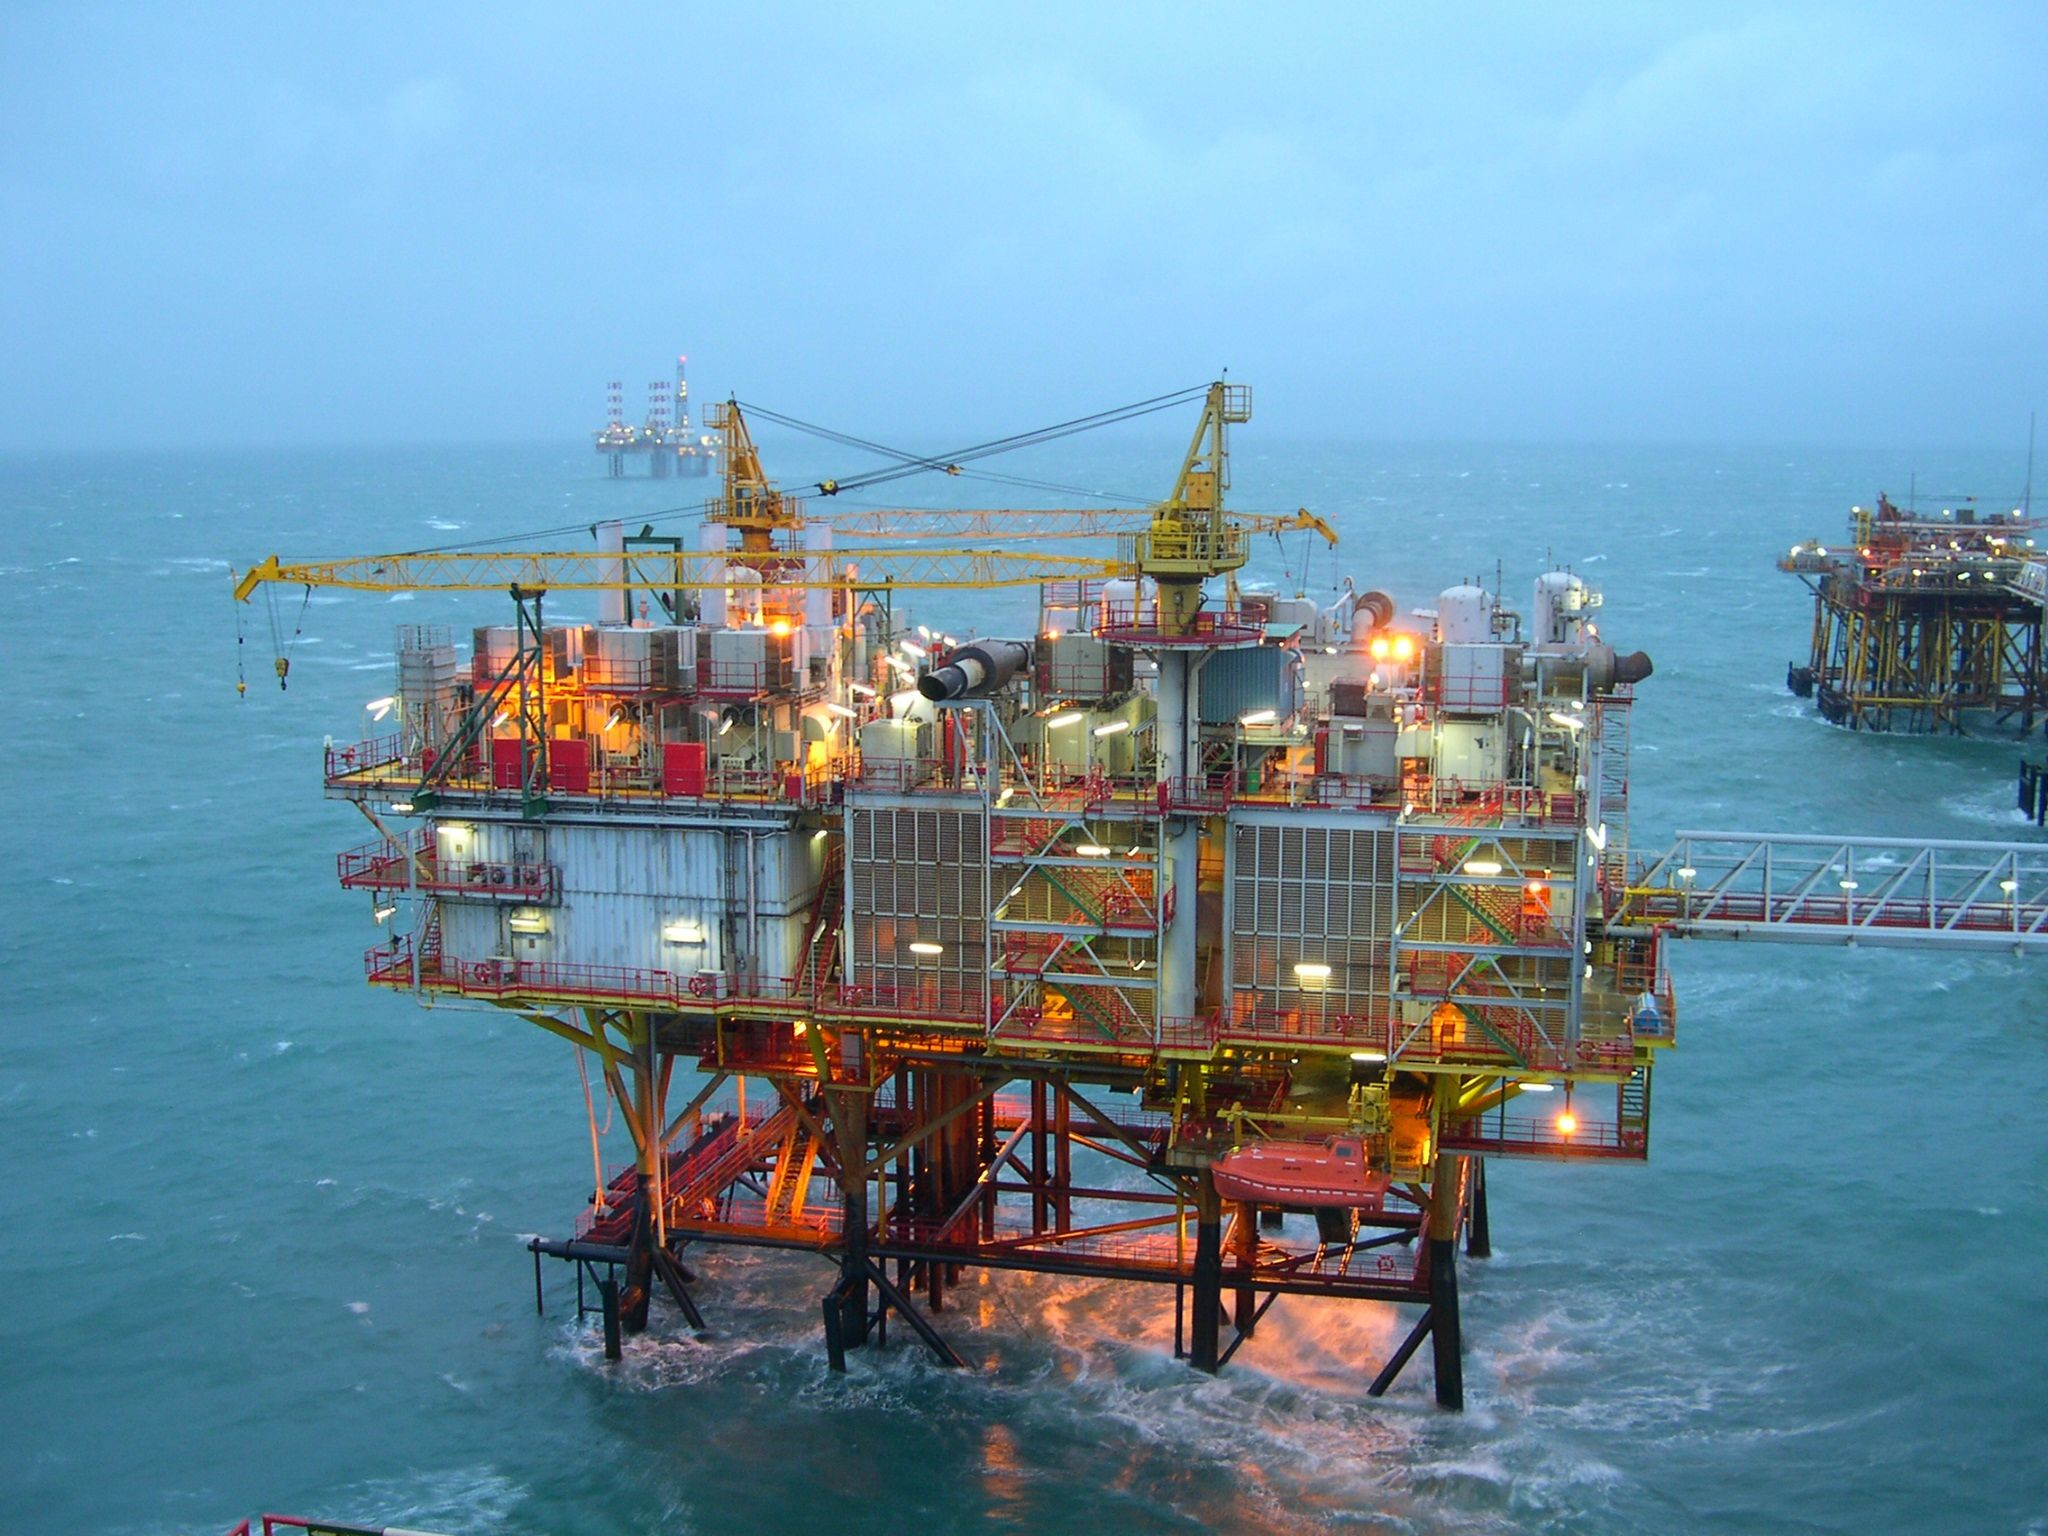 2048x1536 Diamond Offshore provides offshore contract drilling services to the energy  industry around the globe and is a leader in deepwater drilling.